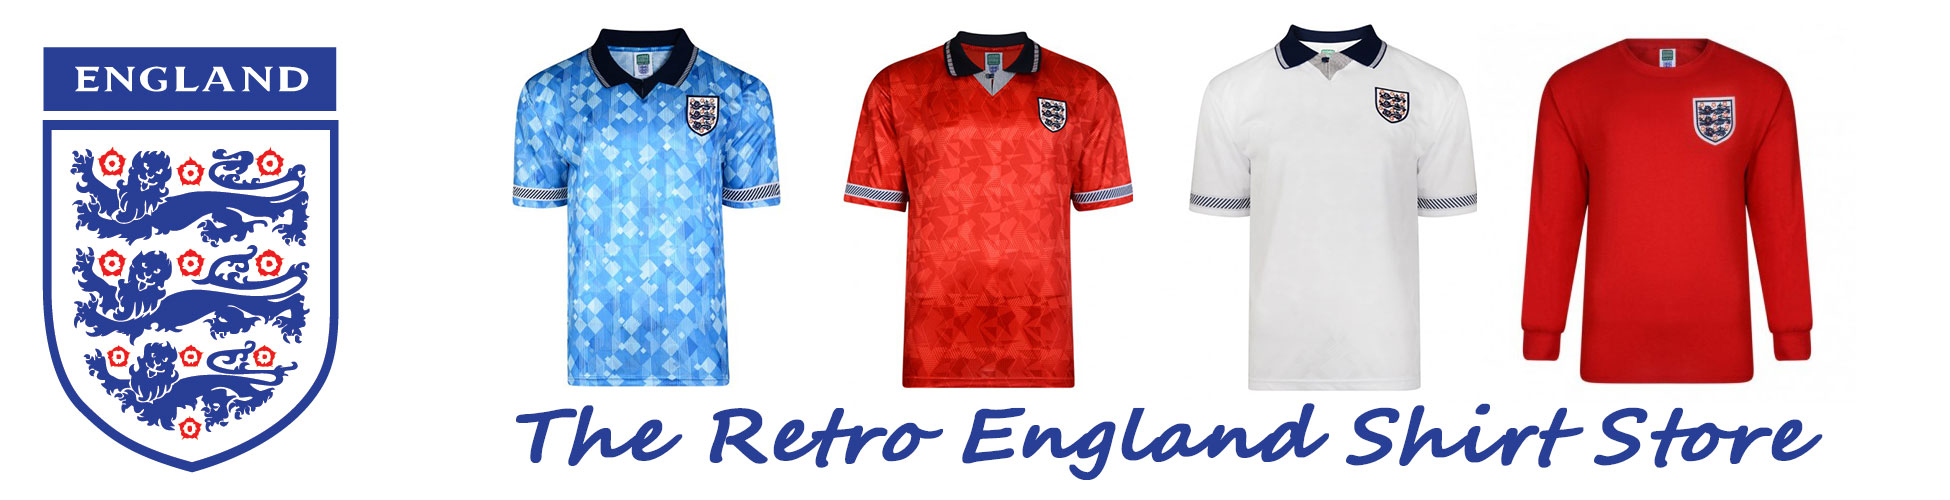 Retro England Shirts